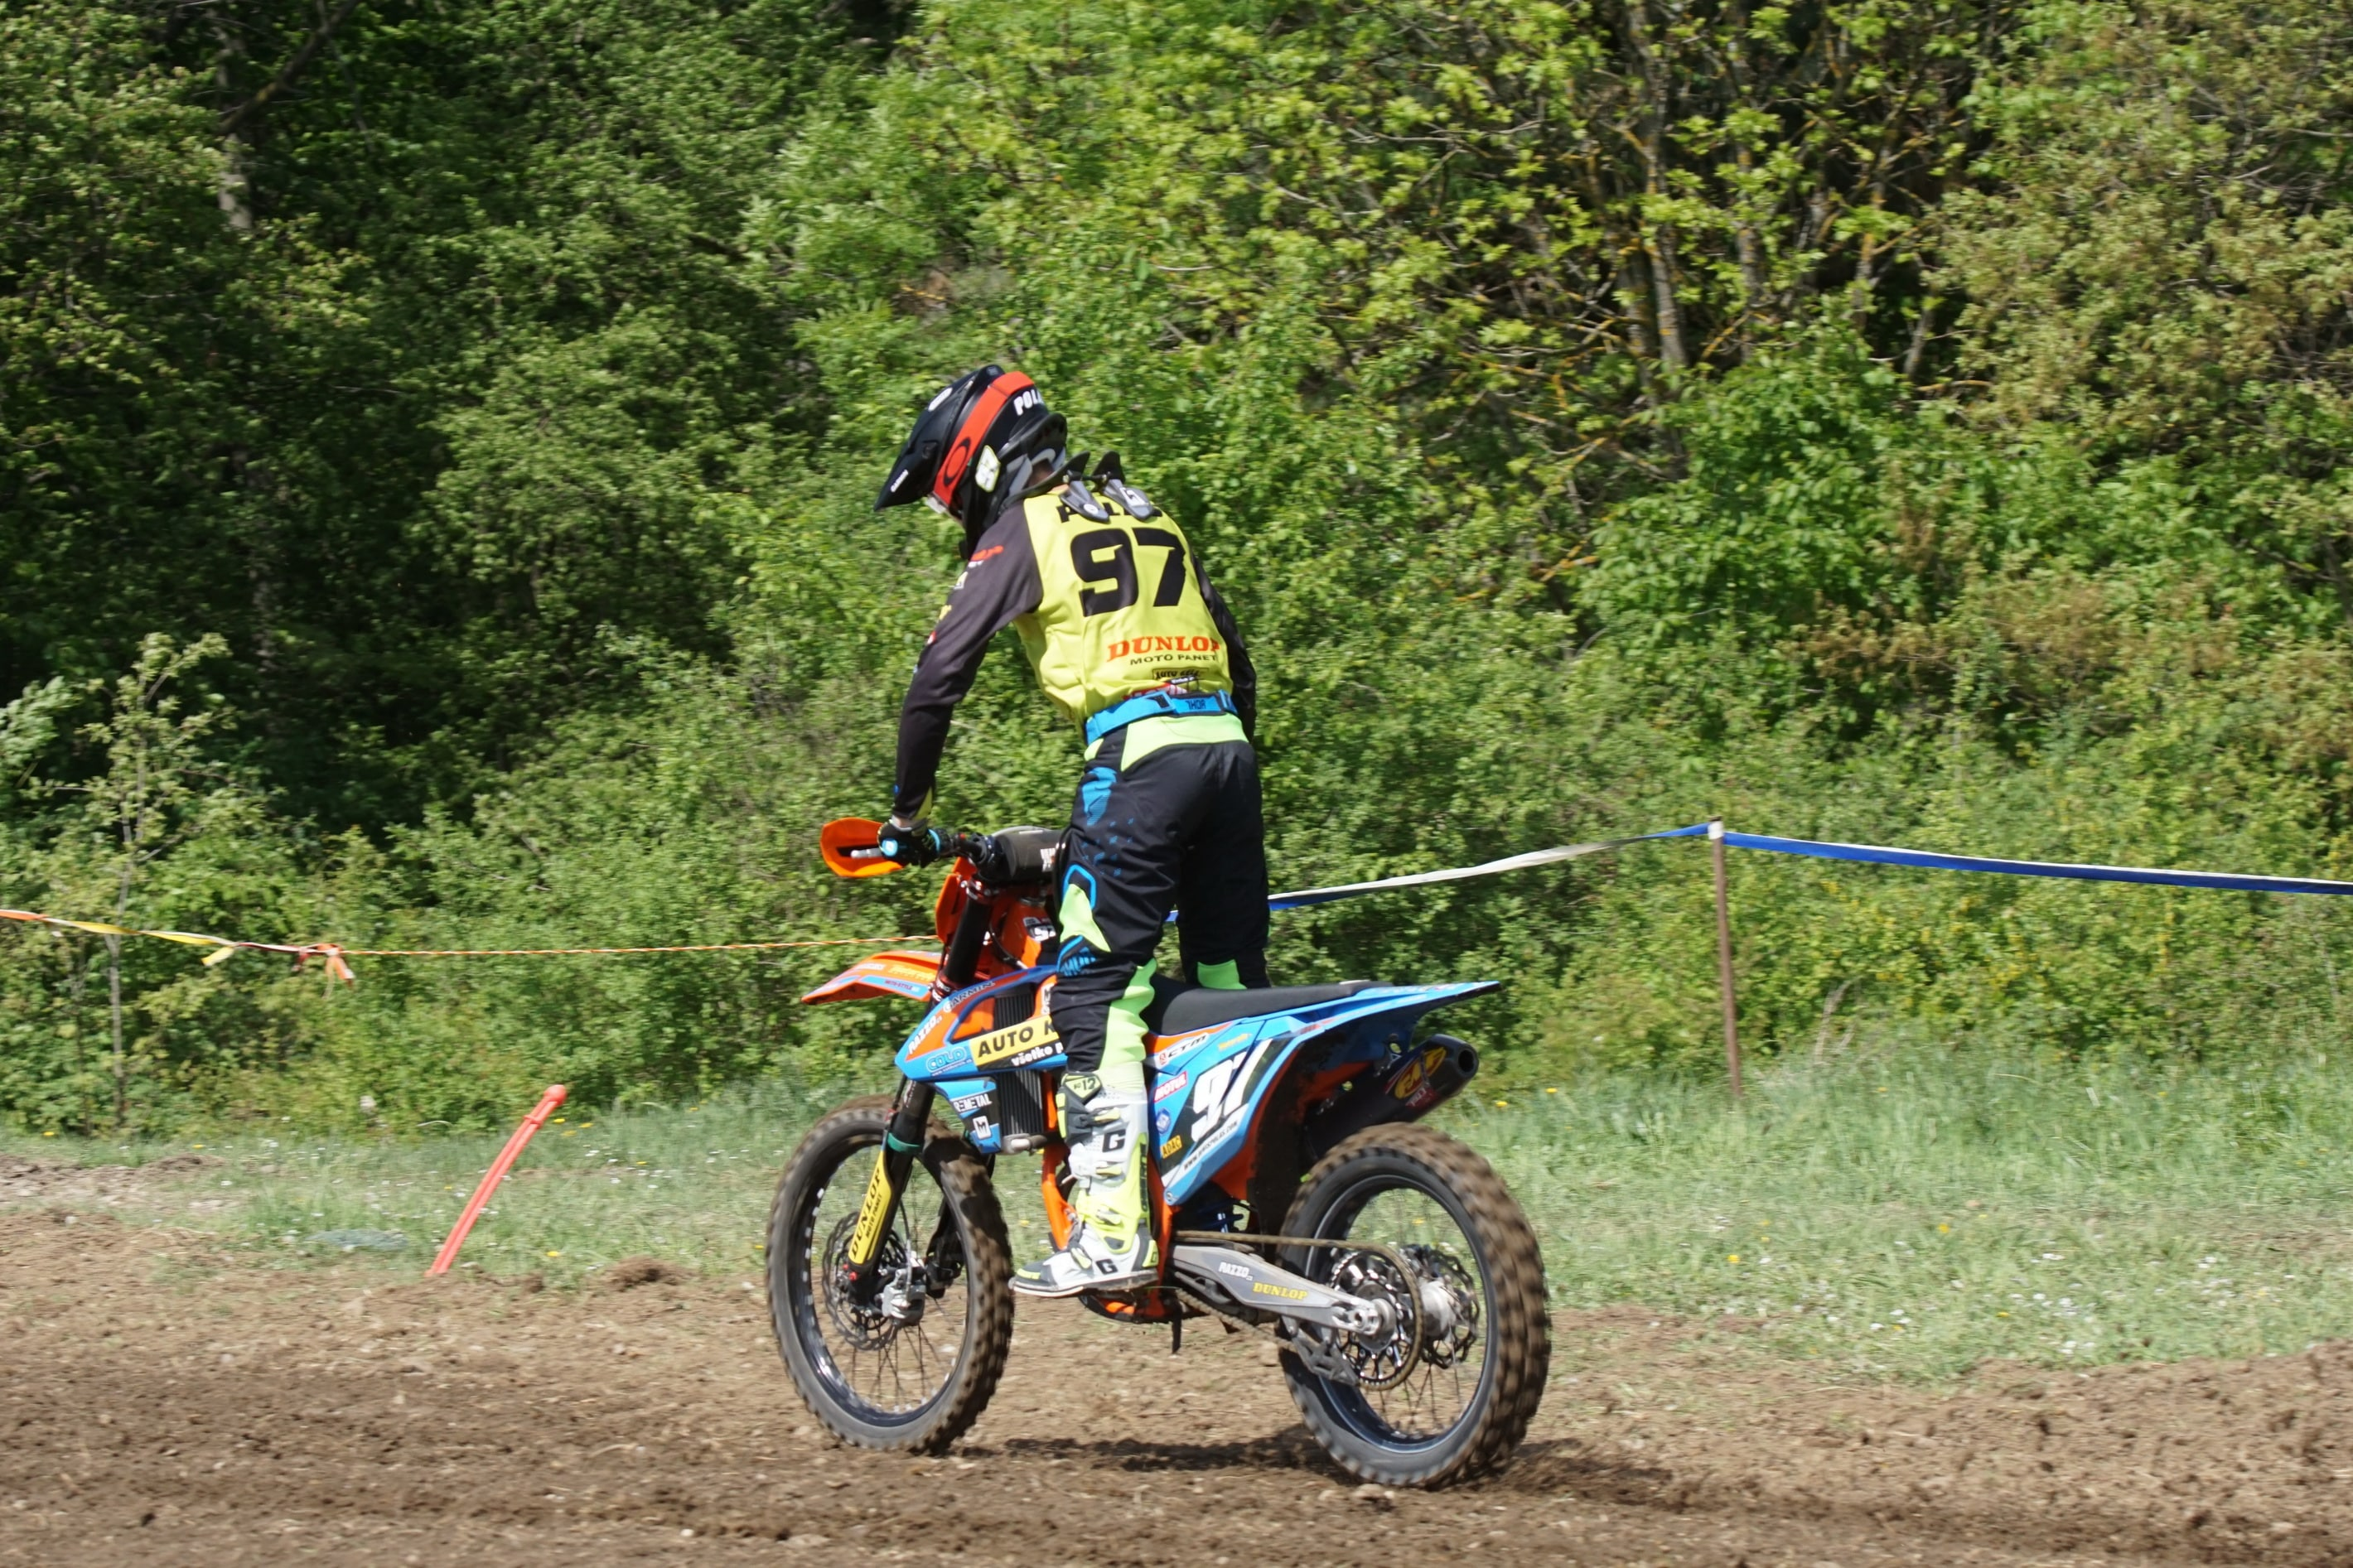 DSC 205_Moto Cross Sittendorf Teil1 am 29.04.2018